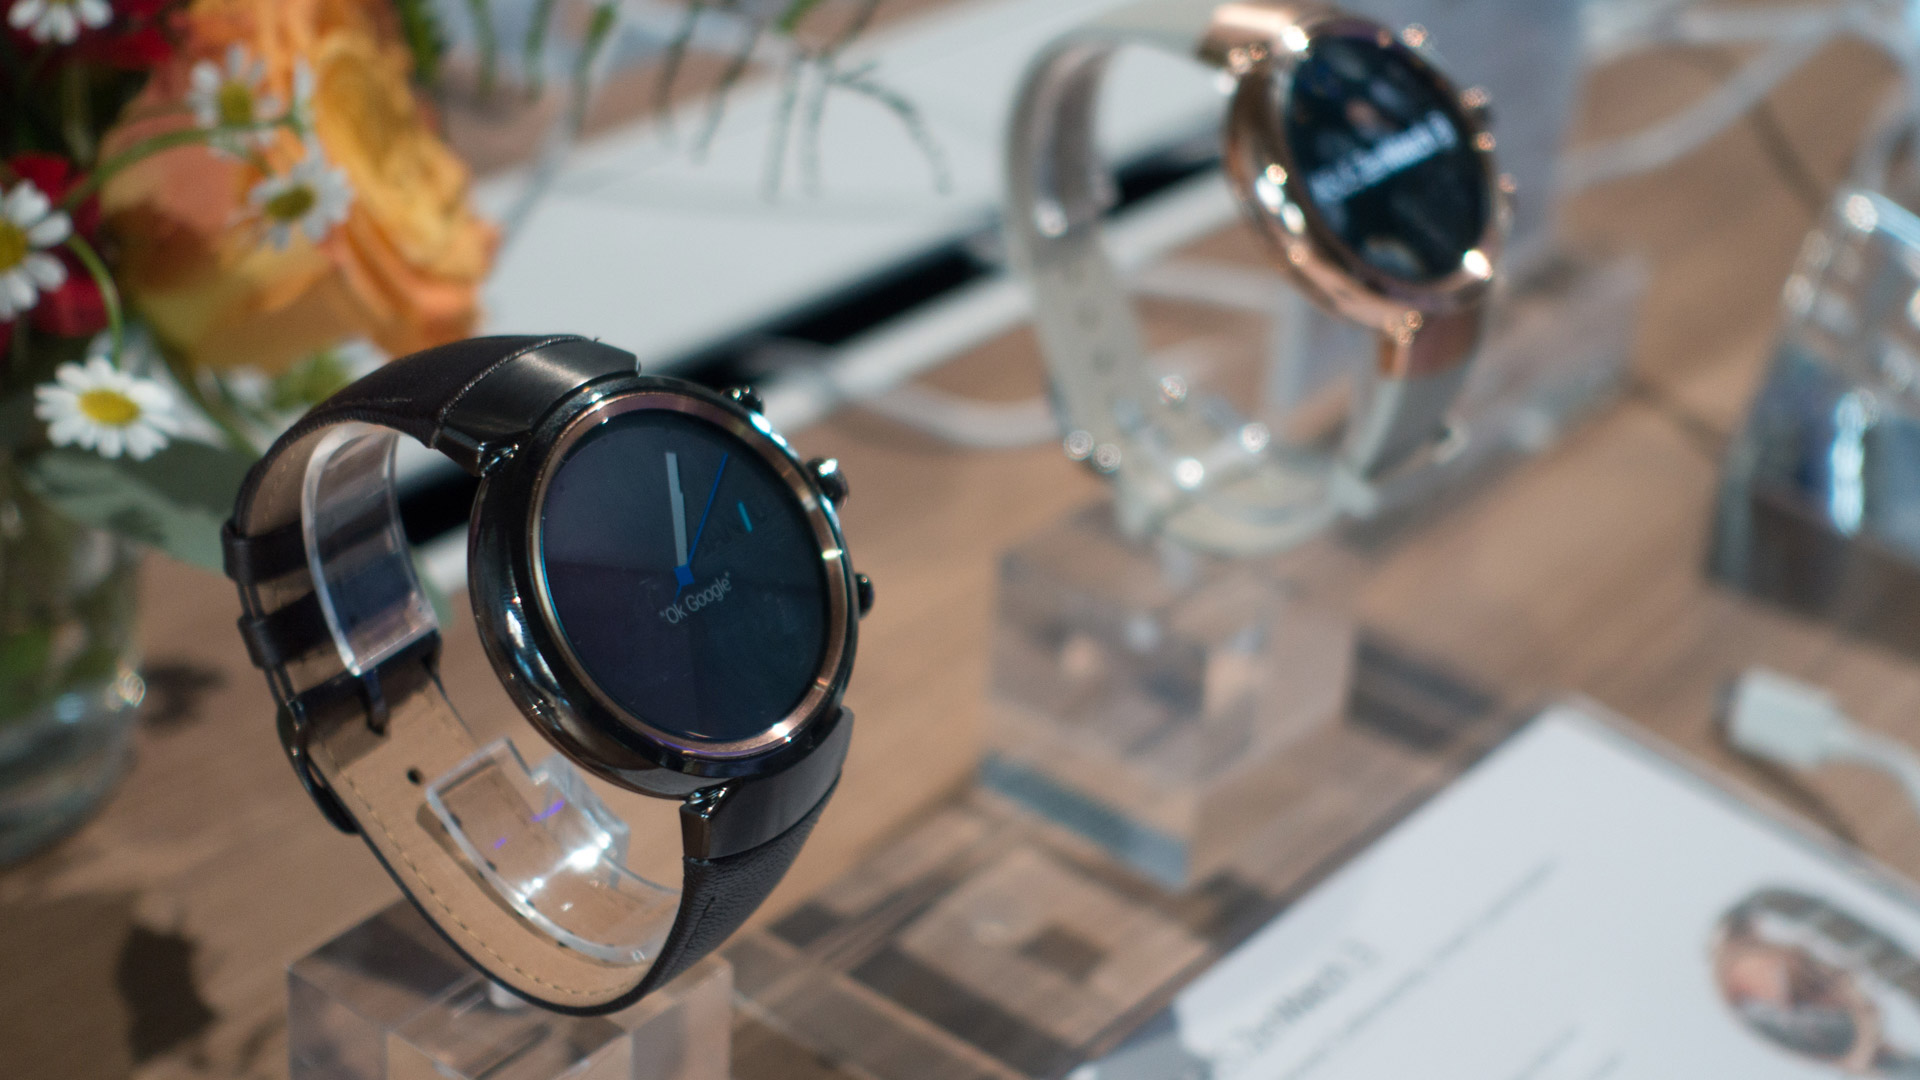 Connectée Lance Montre En Asus Numerama Tech Zenwatch France Sa 3 iukZPXO